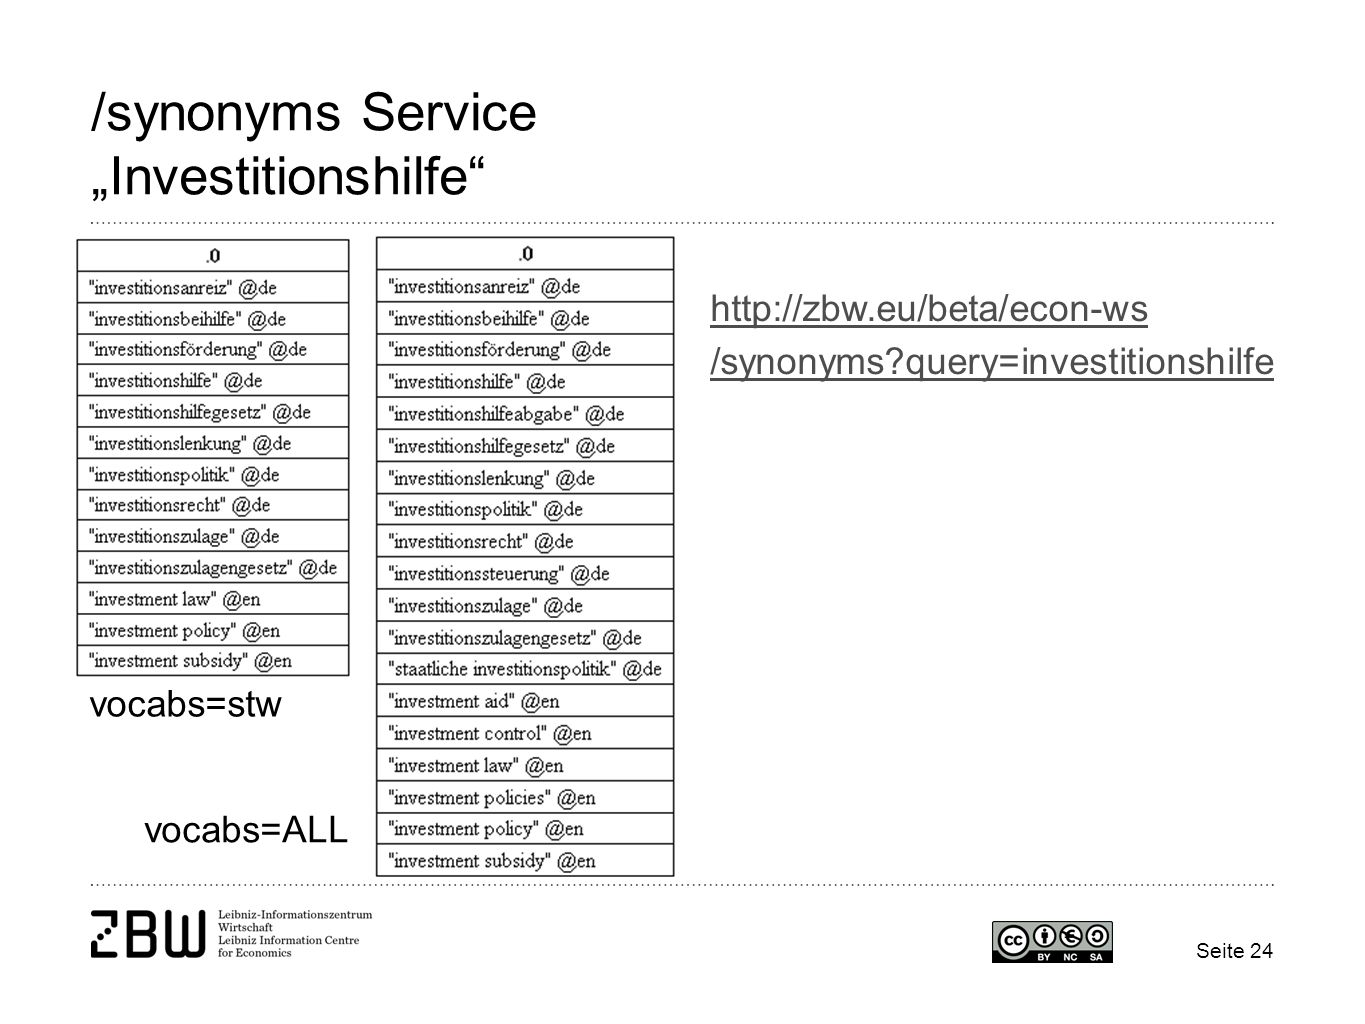 "/synonyms Service ""Investitionshilfe"